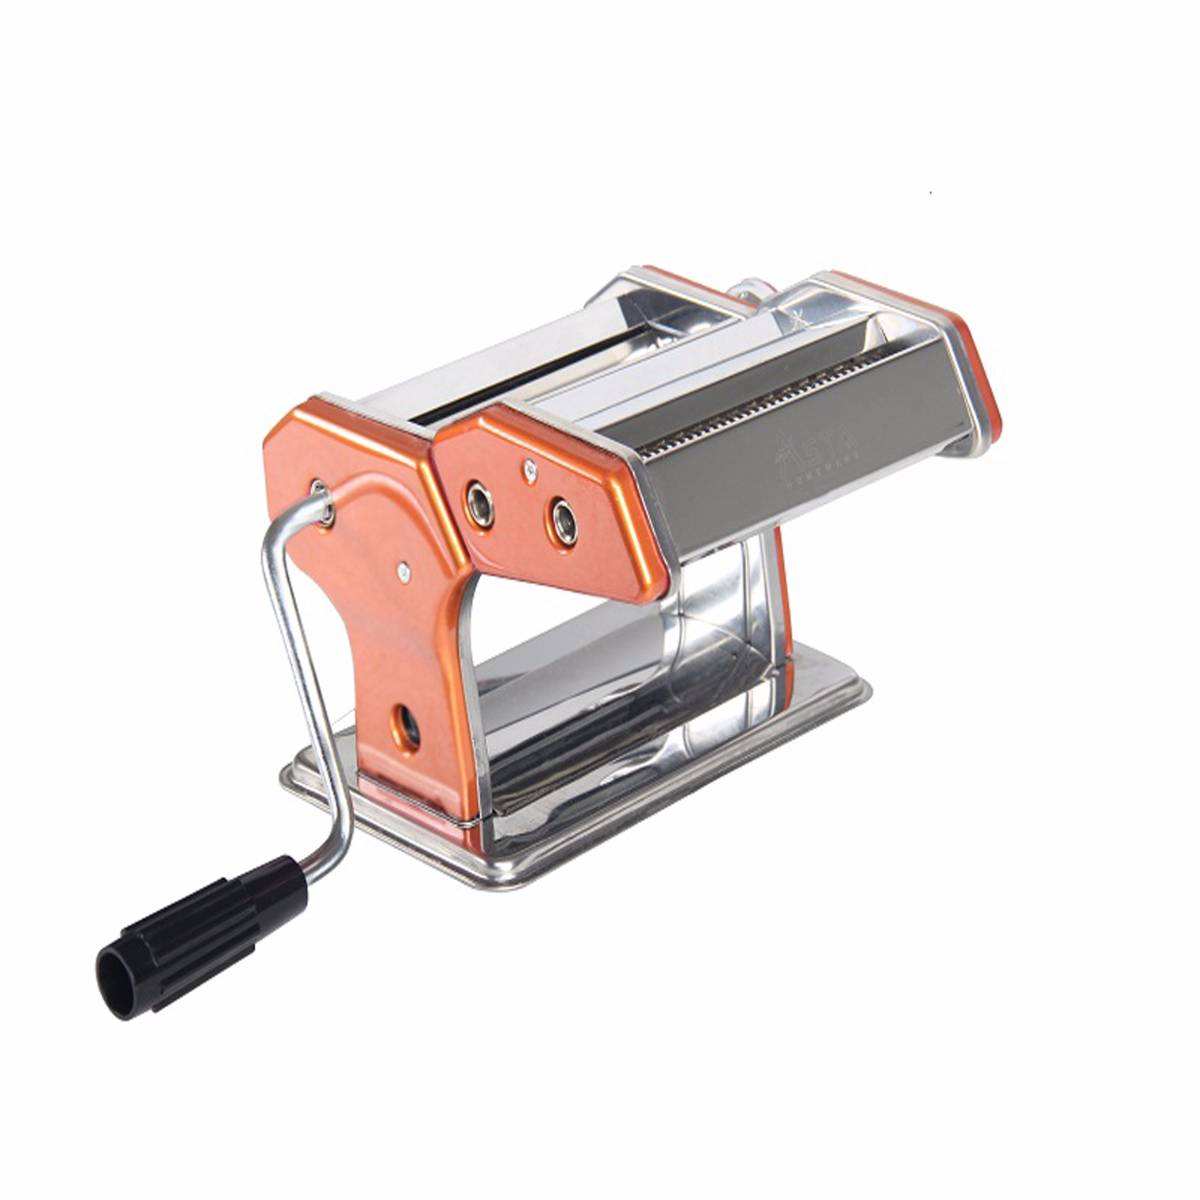 Asta Homeware Gilingan Mie / Pasta Maker ( Red , Orange & Silver/stainless Steel )